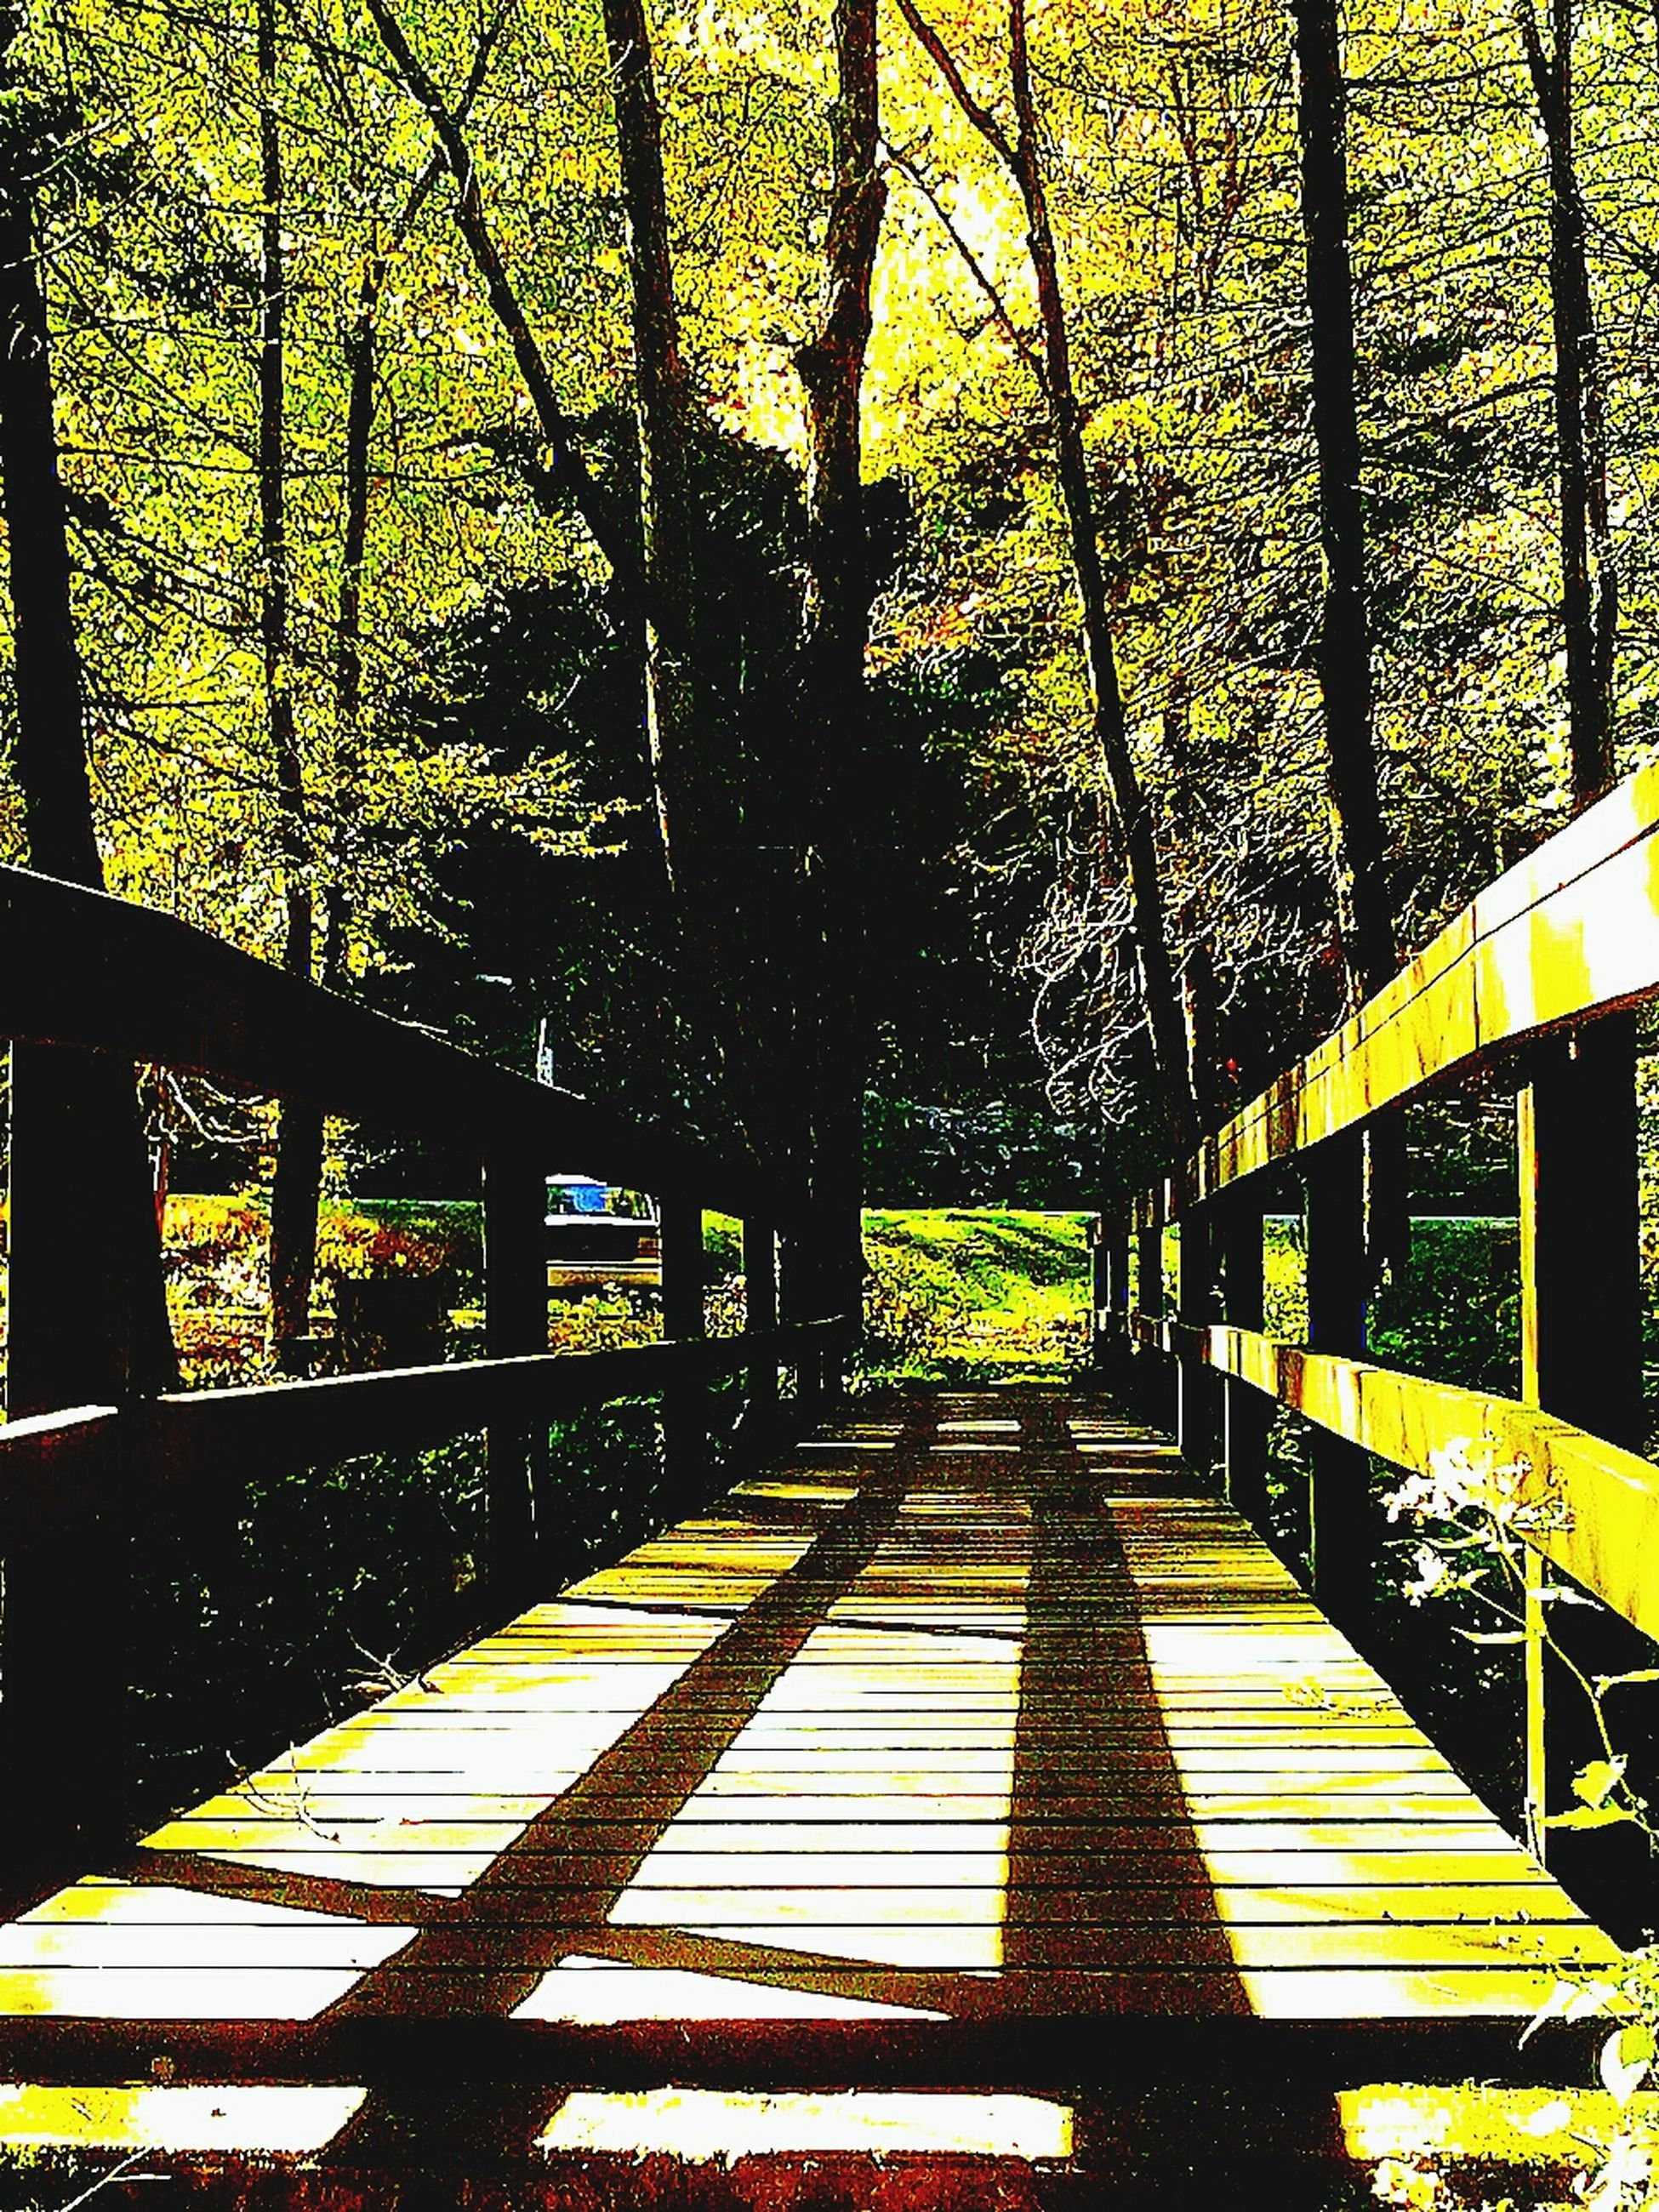 tree, the way forward, railing, footbridge, bridge - man made structure, tree trunk, branch, growth, built structure, shadow, park - man made space, sunlight, connection, nature, forest, tranquility, architecture, outdoors, day, footpath